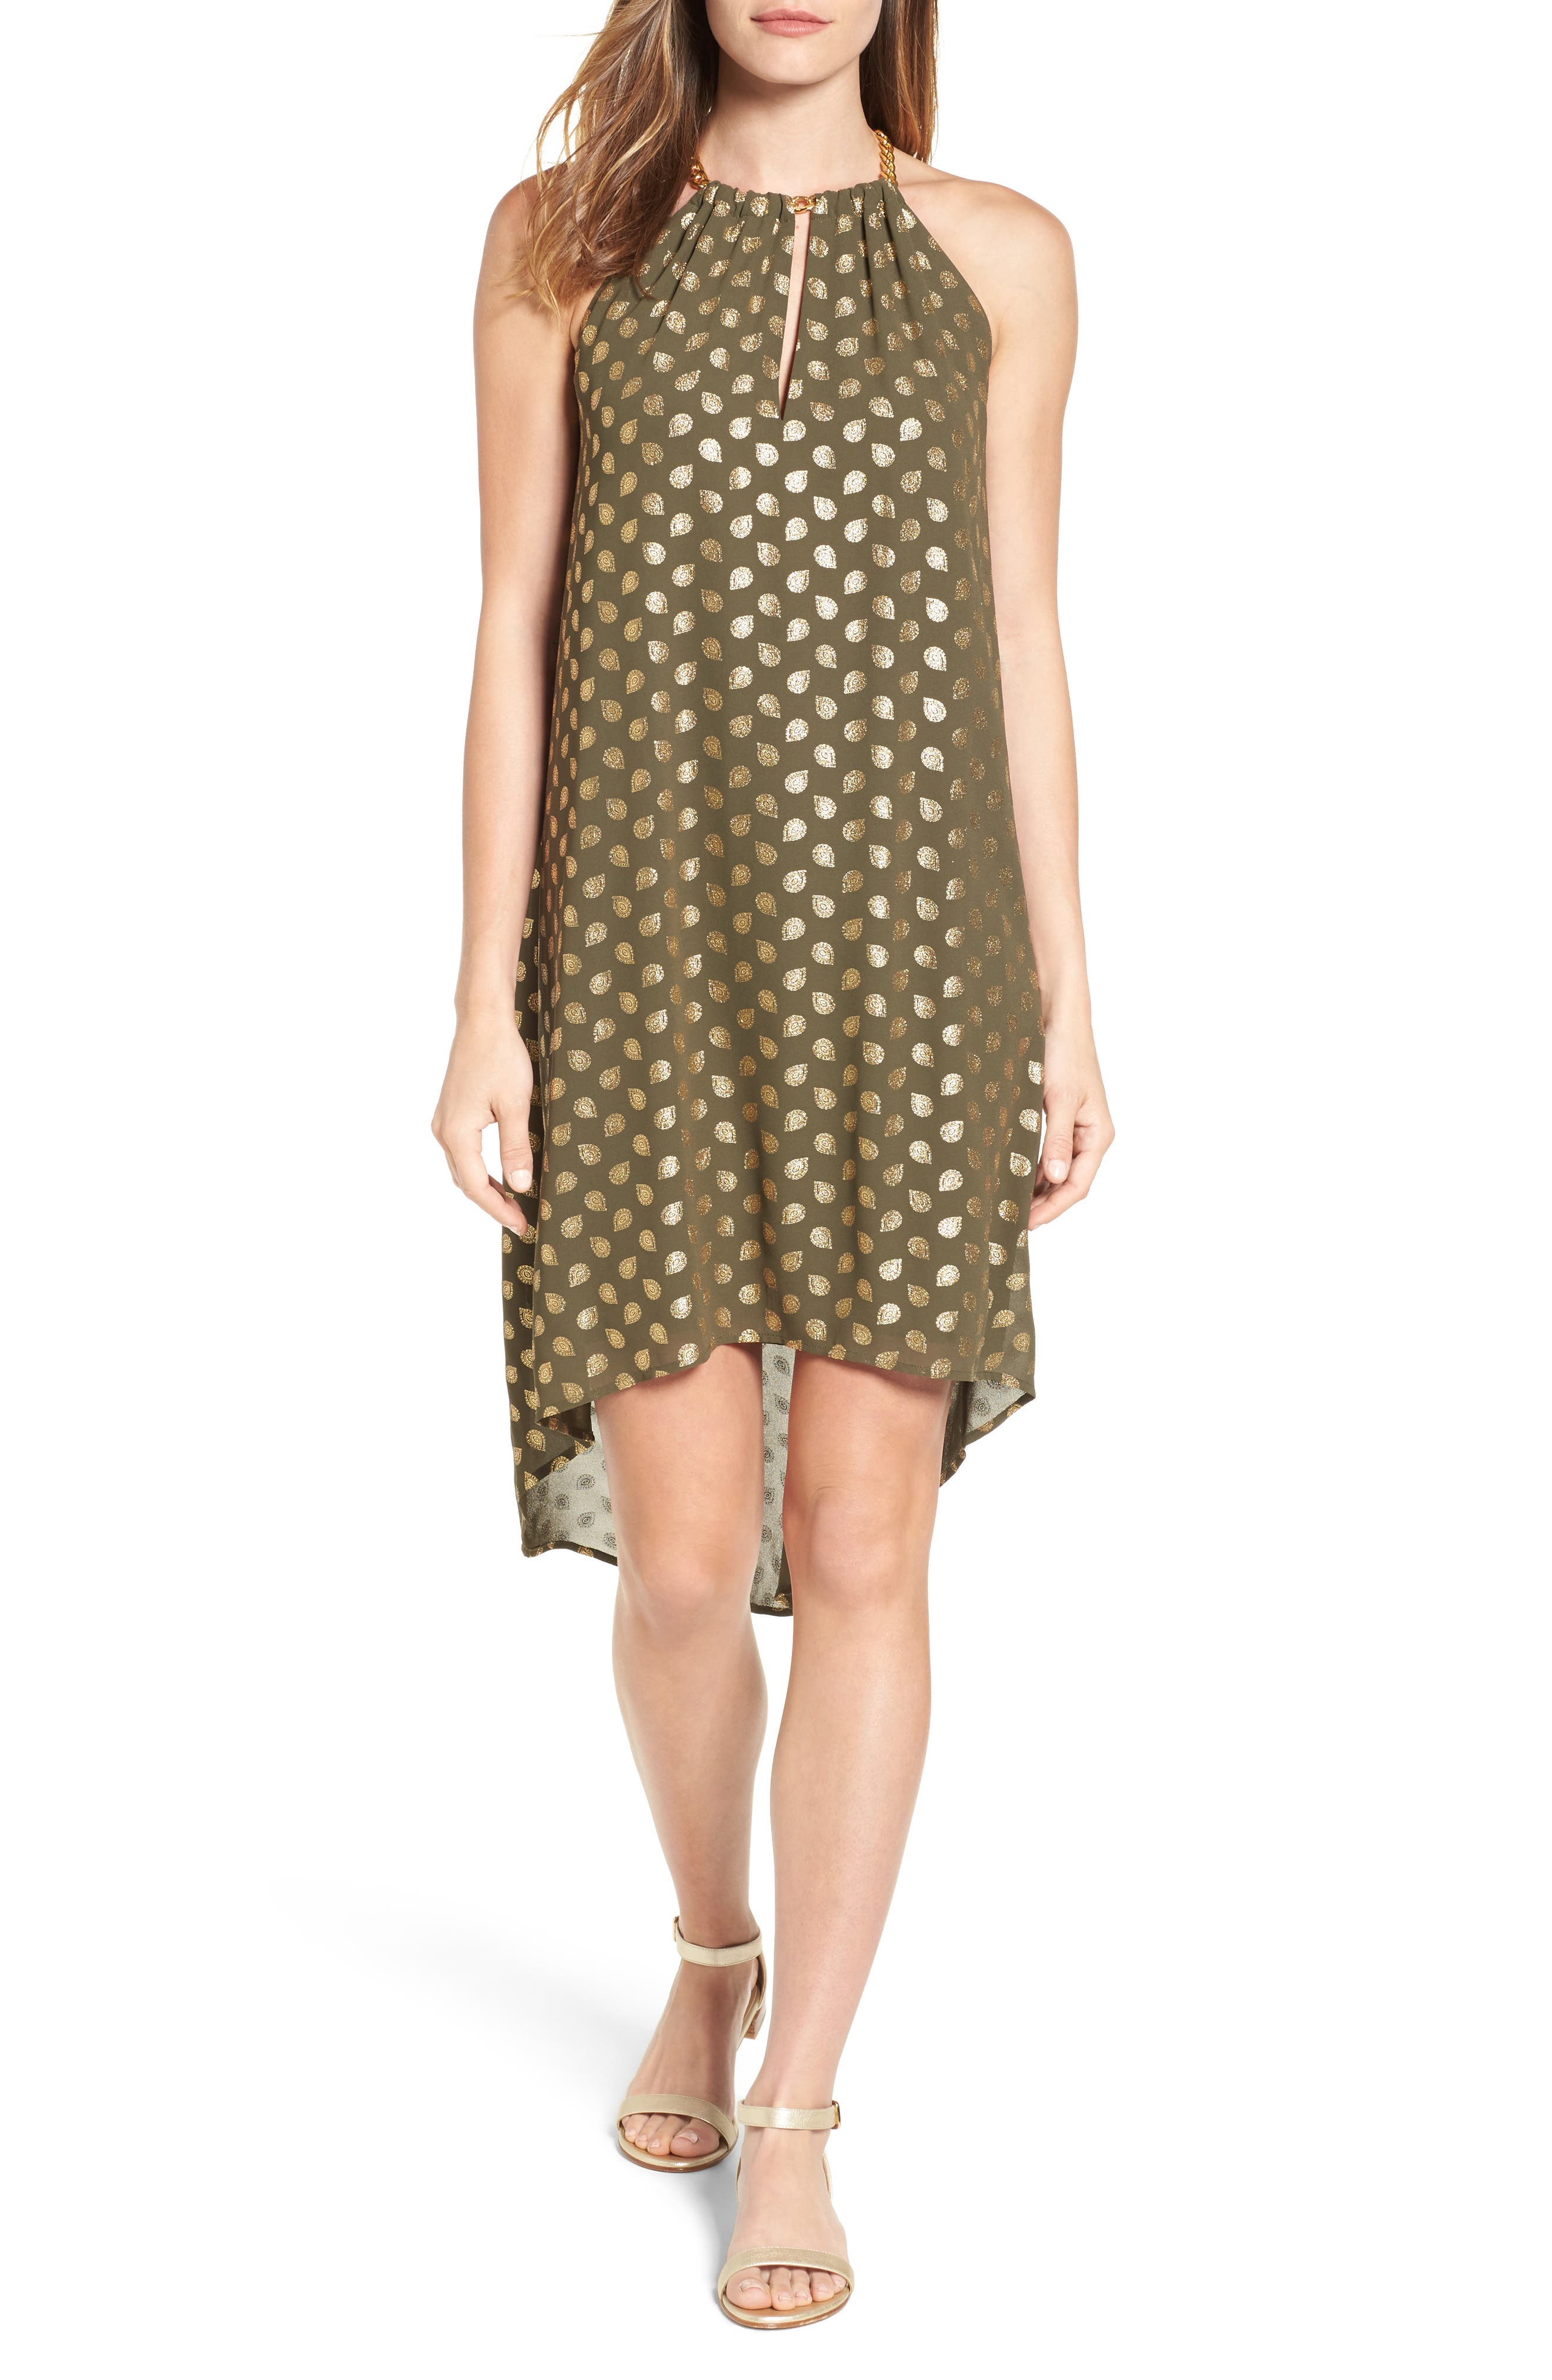 MICHAEL Michael Kors Bergalia Chain Neck Foiled Trapeze Dress (Regular & Petite)